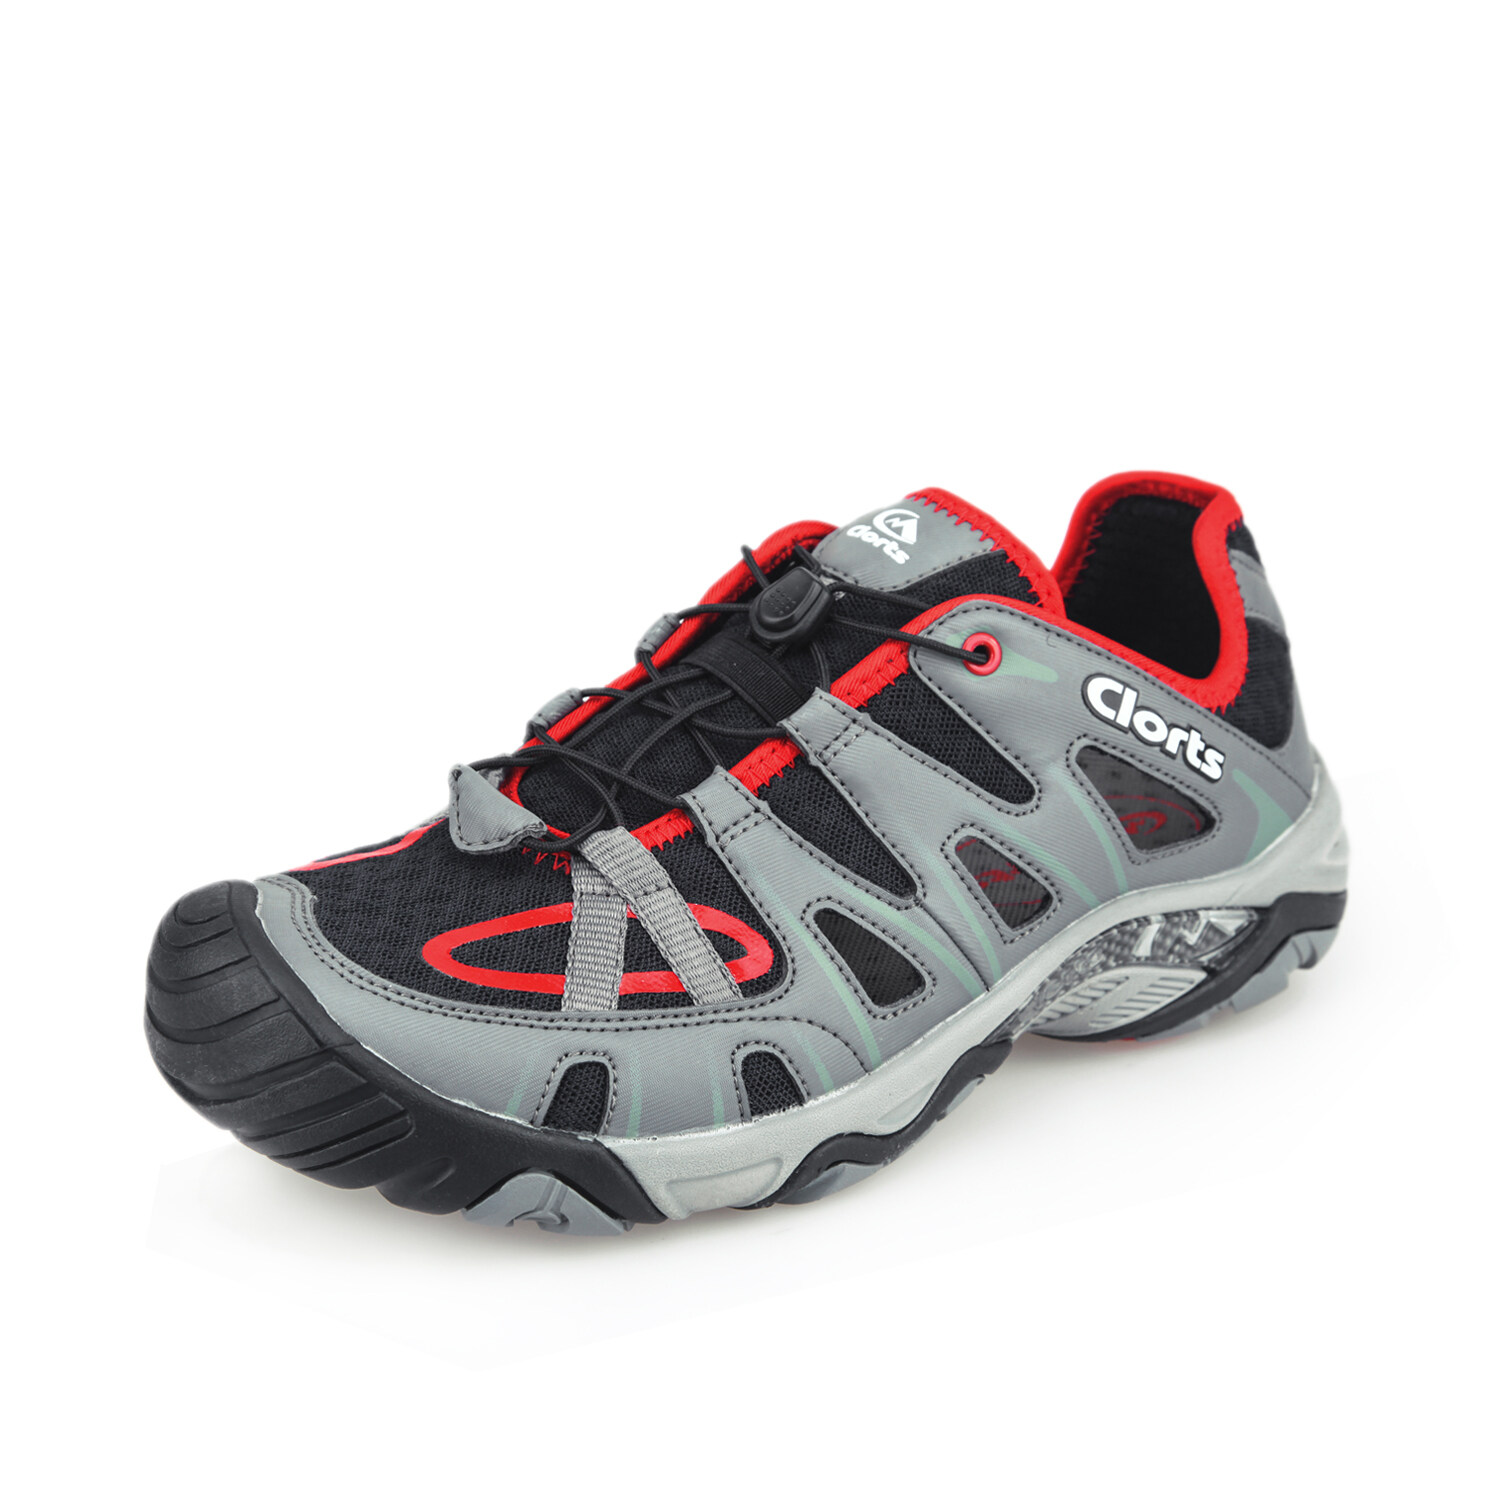 7bbba2139eea Clorts Men Closed Toe Amphibious Athletic Water Shoe Quick Drying Sport Hiking  Water Sandal  Clorts ...